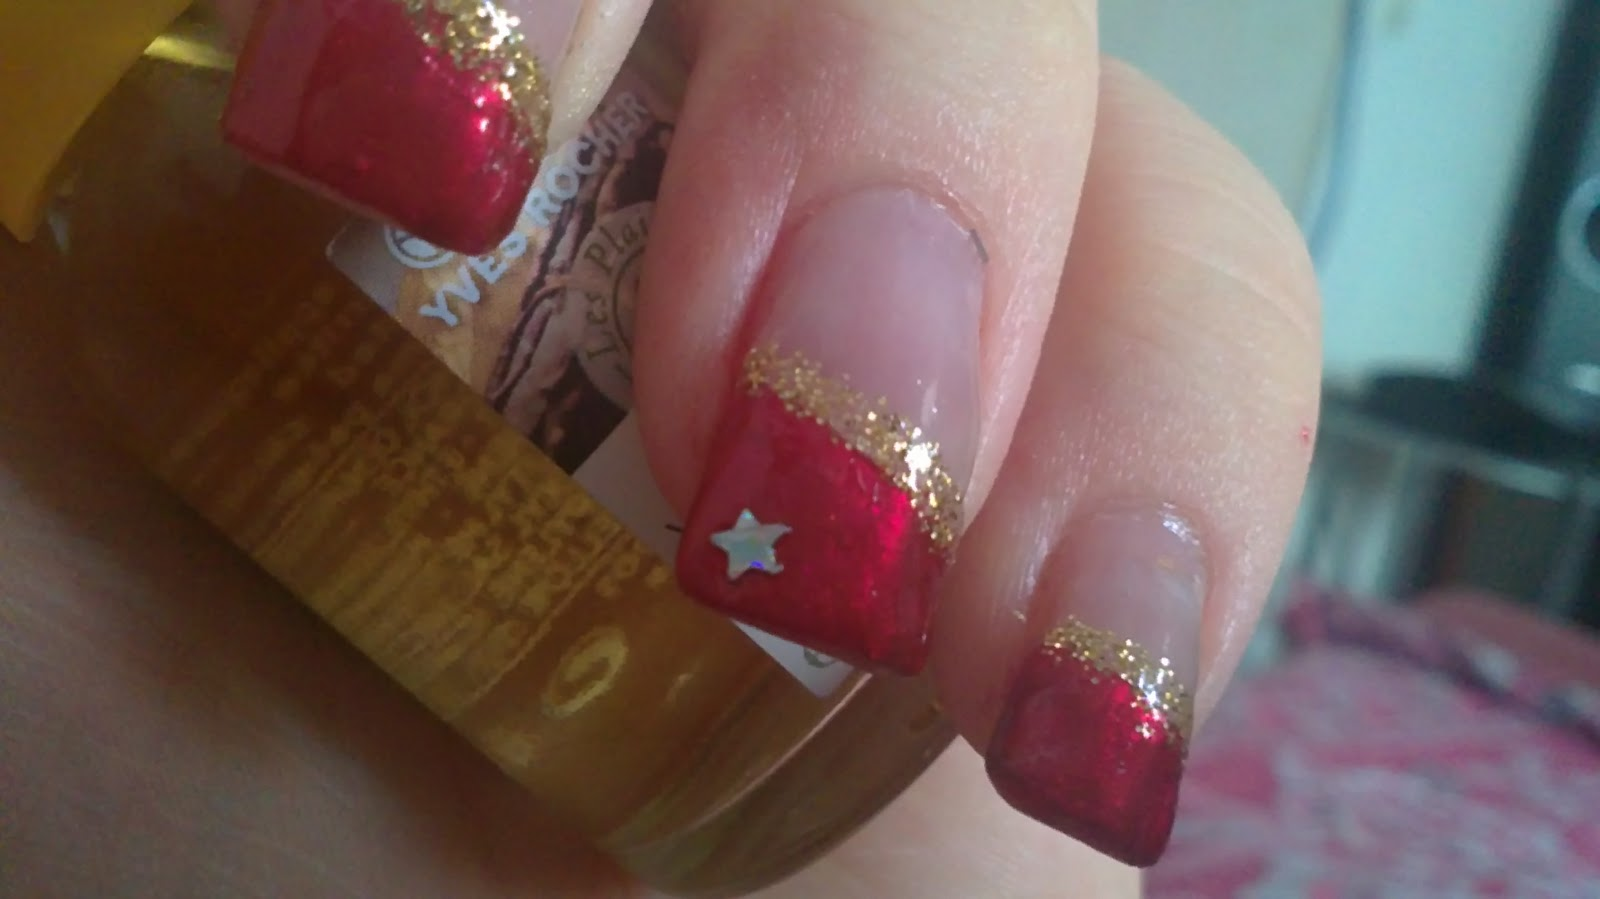 Beauty Welt and More: Weihnachts - Nageldesign